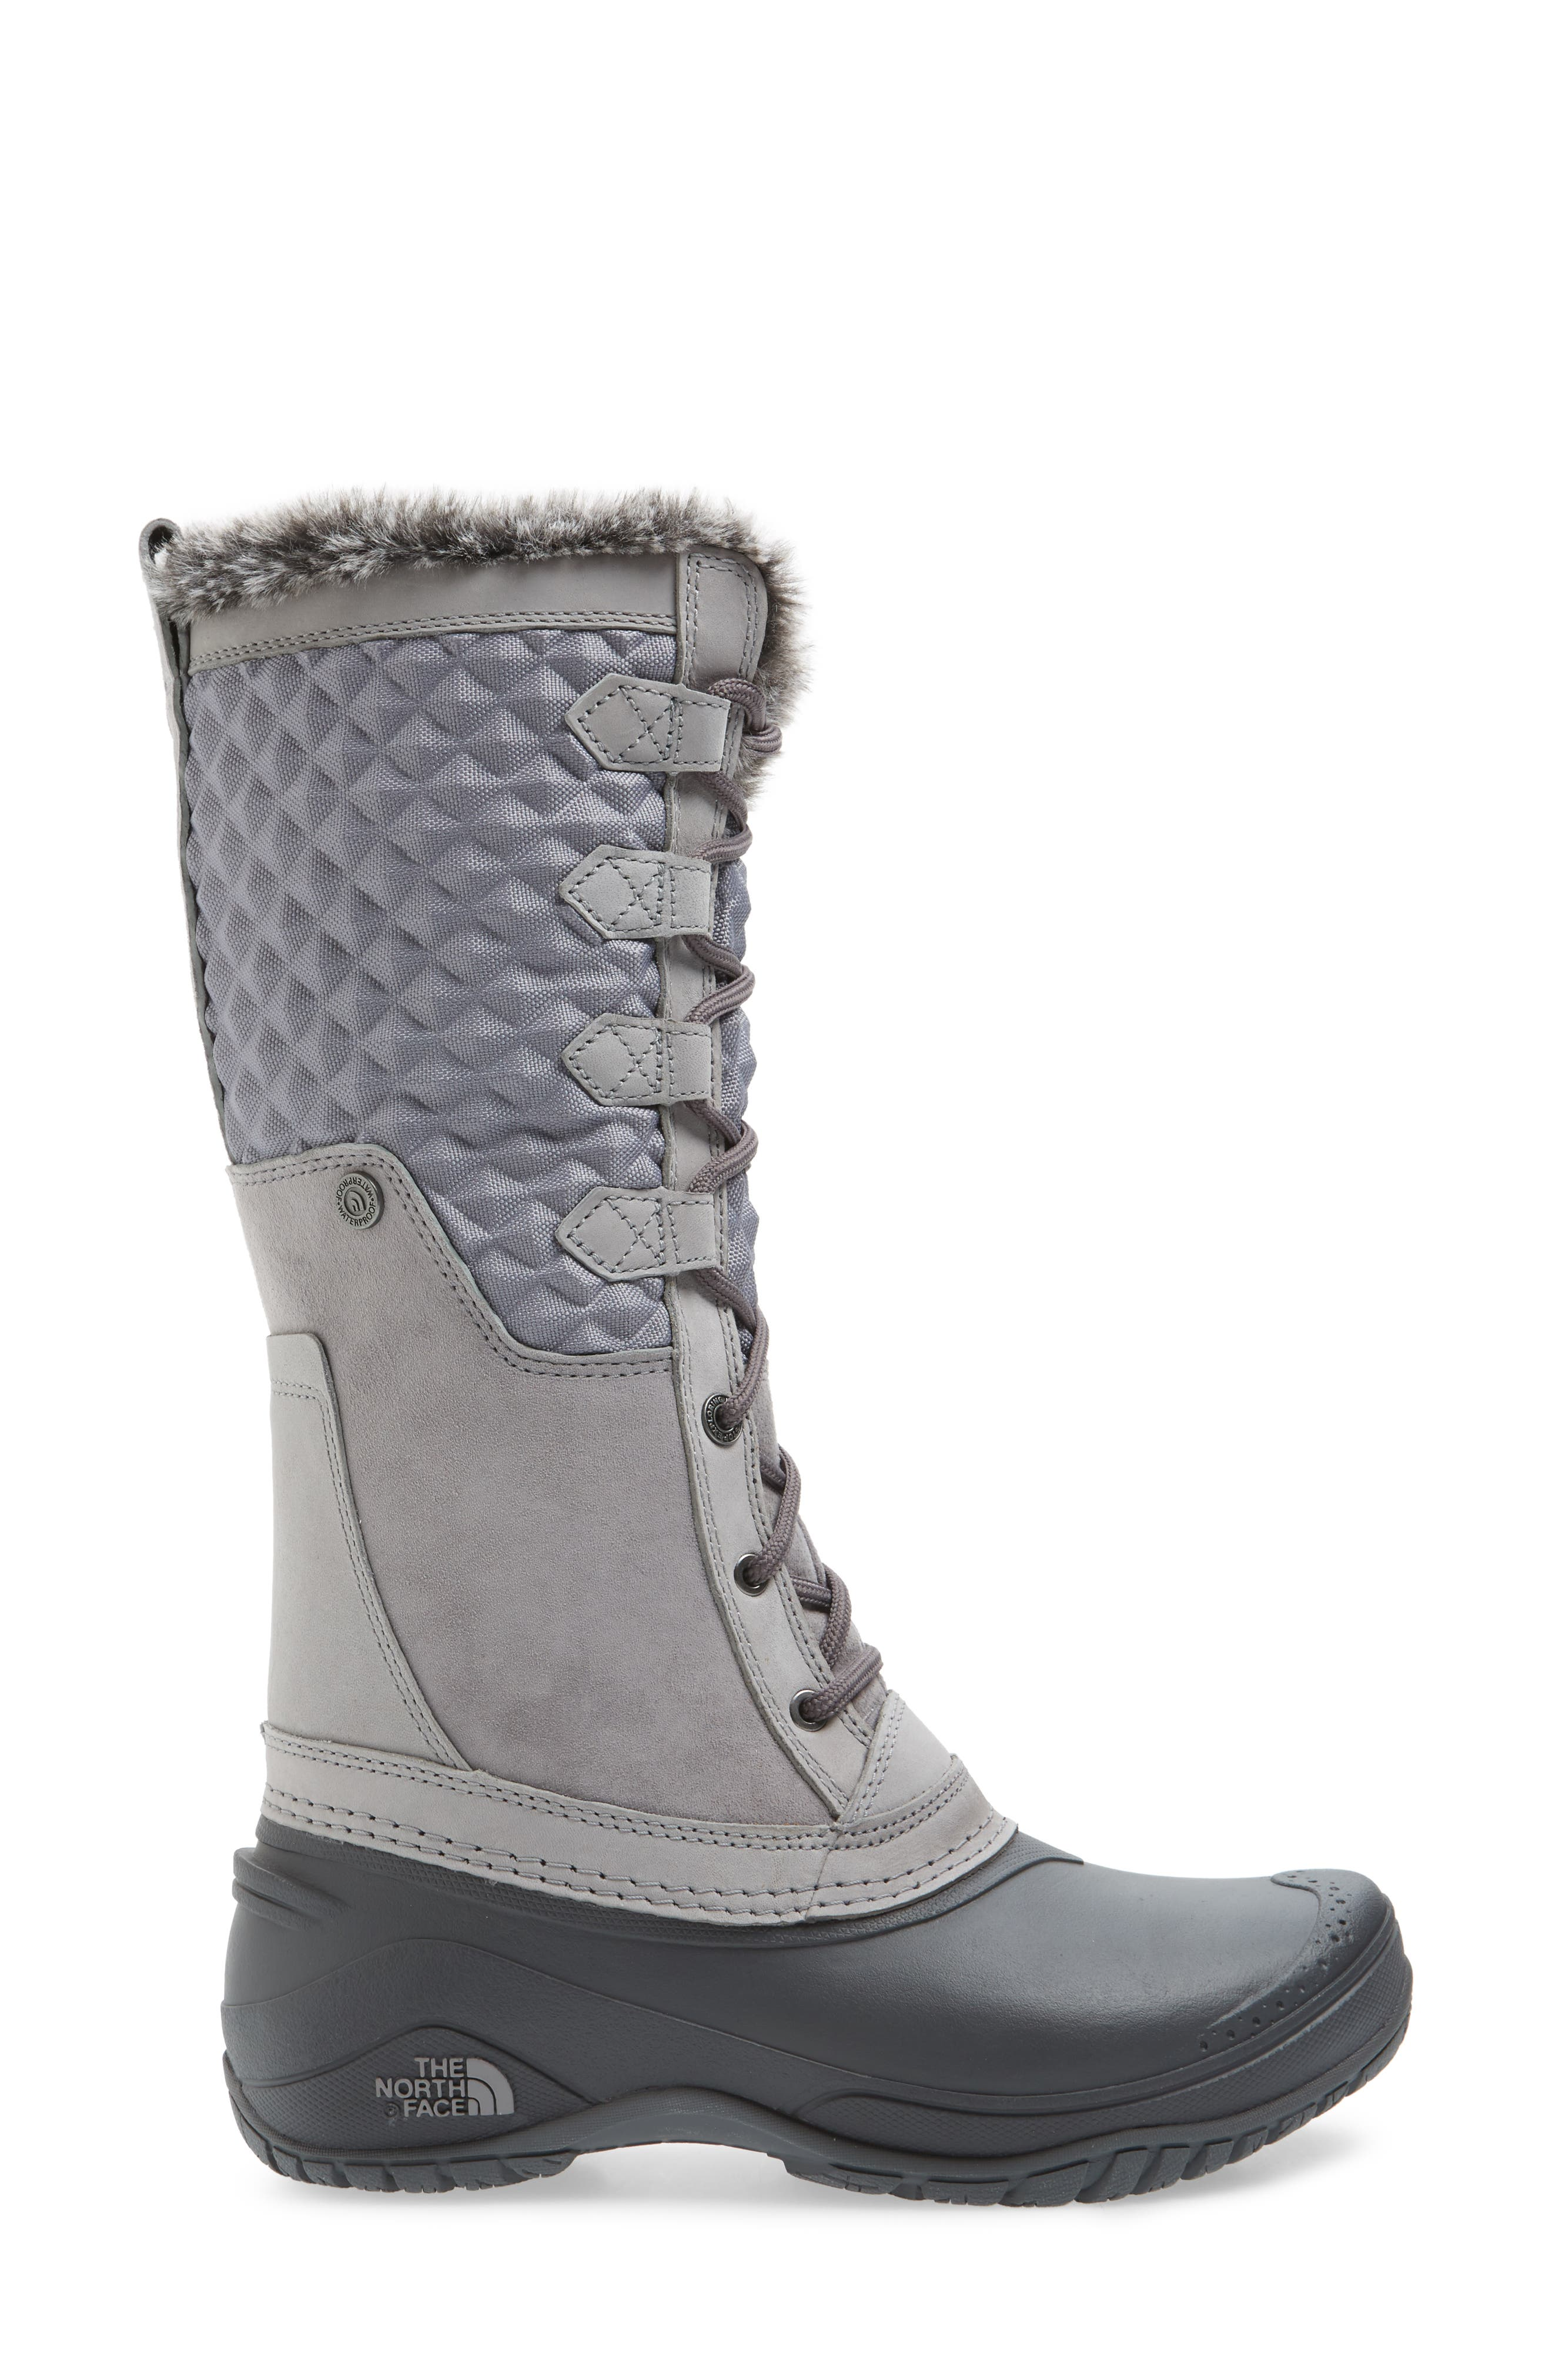 Alternate Image 3  - The North Face Shellista III Tall Waterproof Insulated Winter Boot (Women)